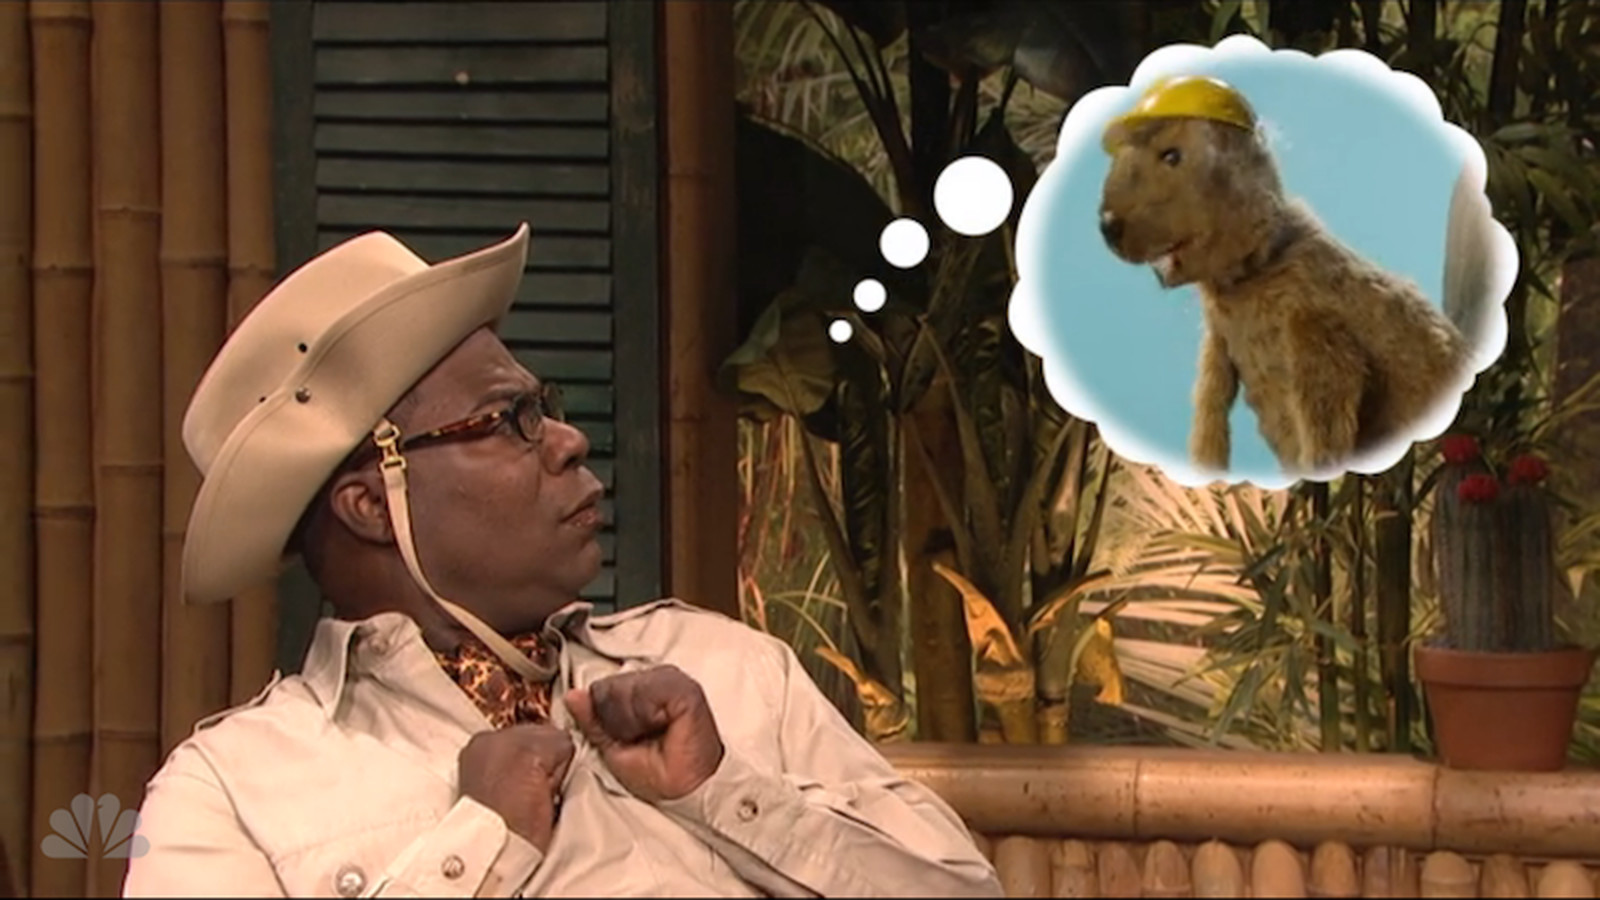 Tracy_morgan_brian_fellows_safari_planet_snl_0lv.0